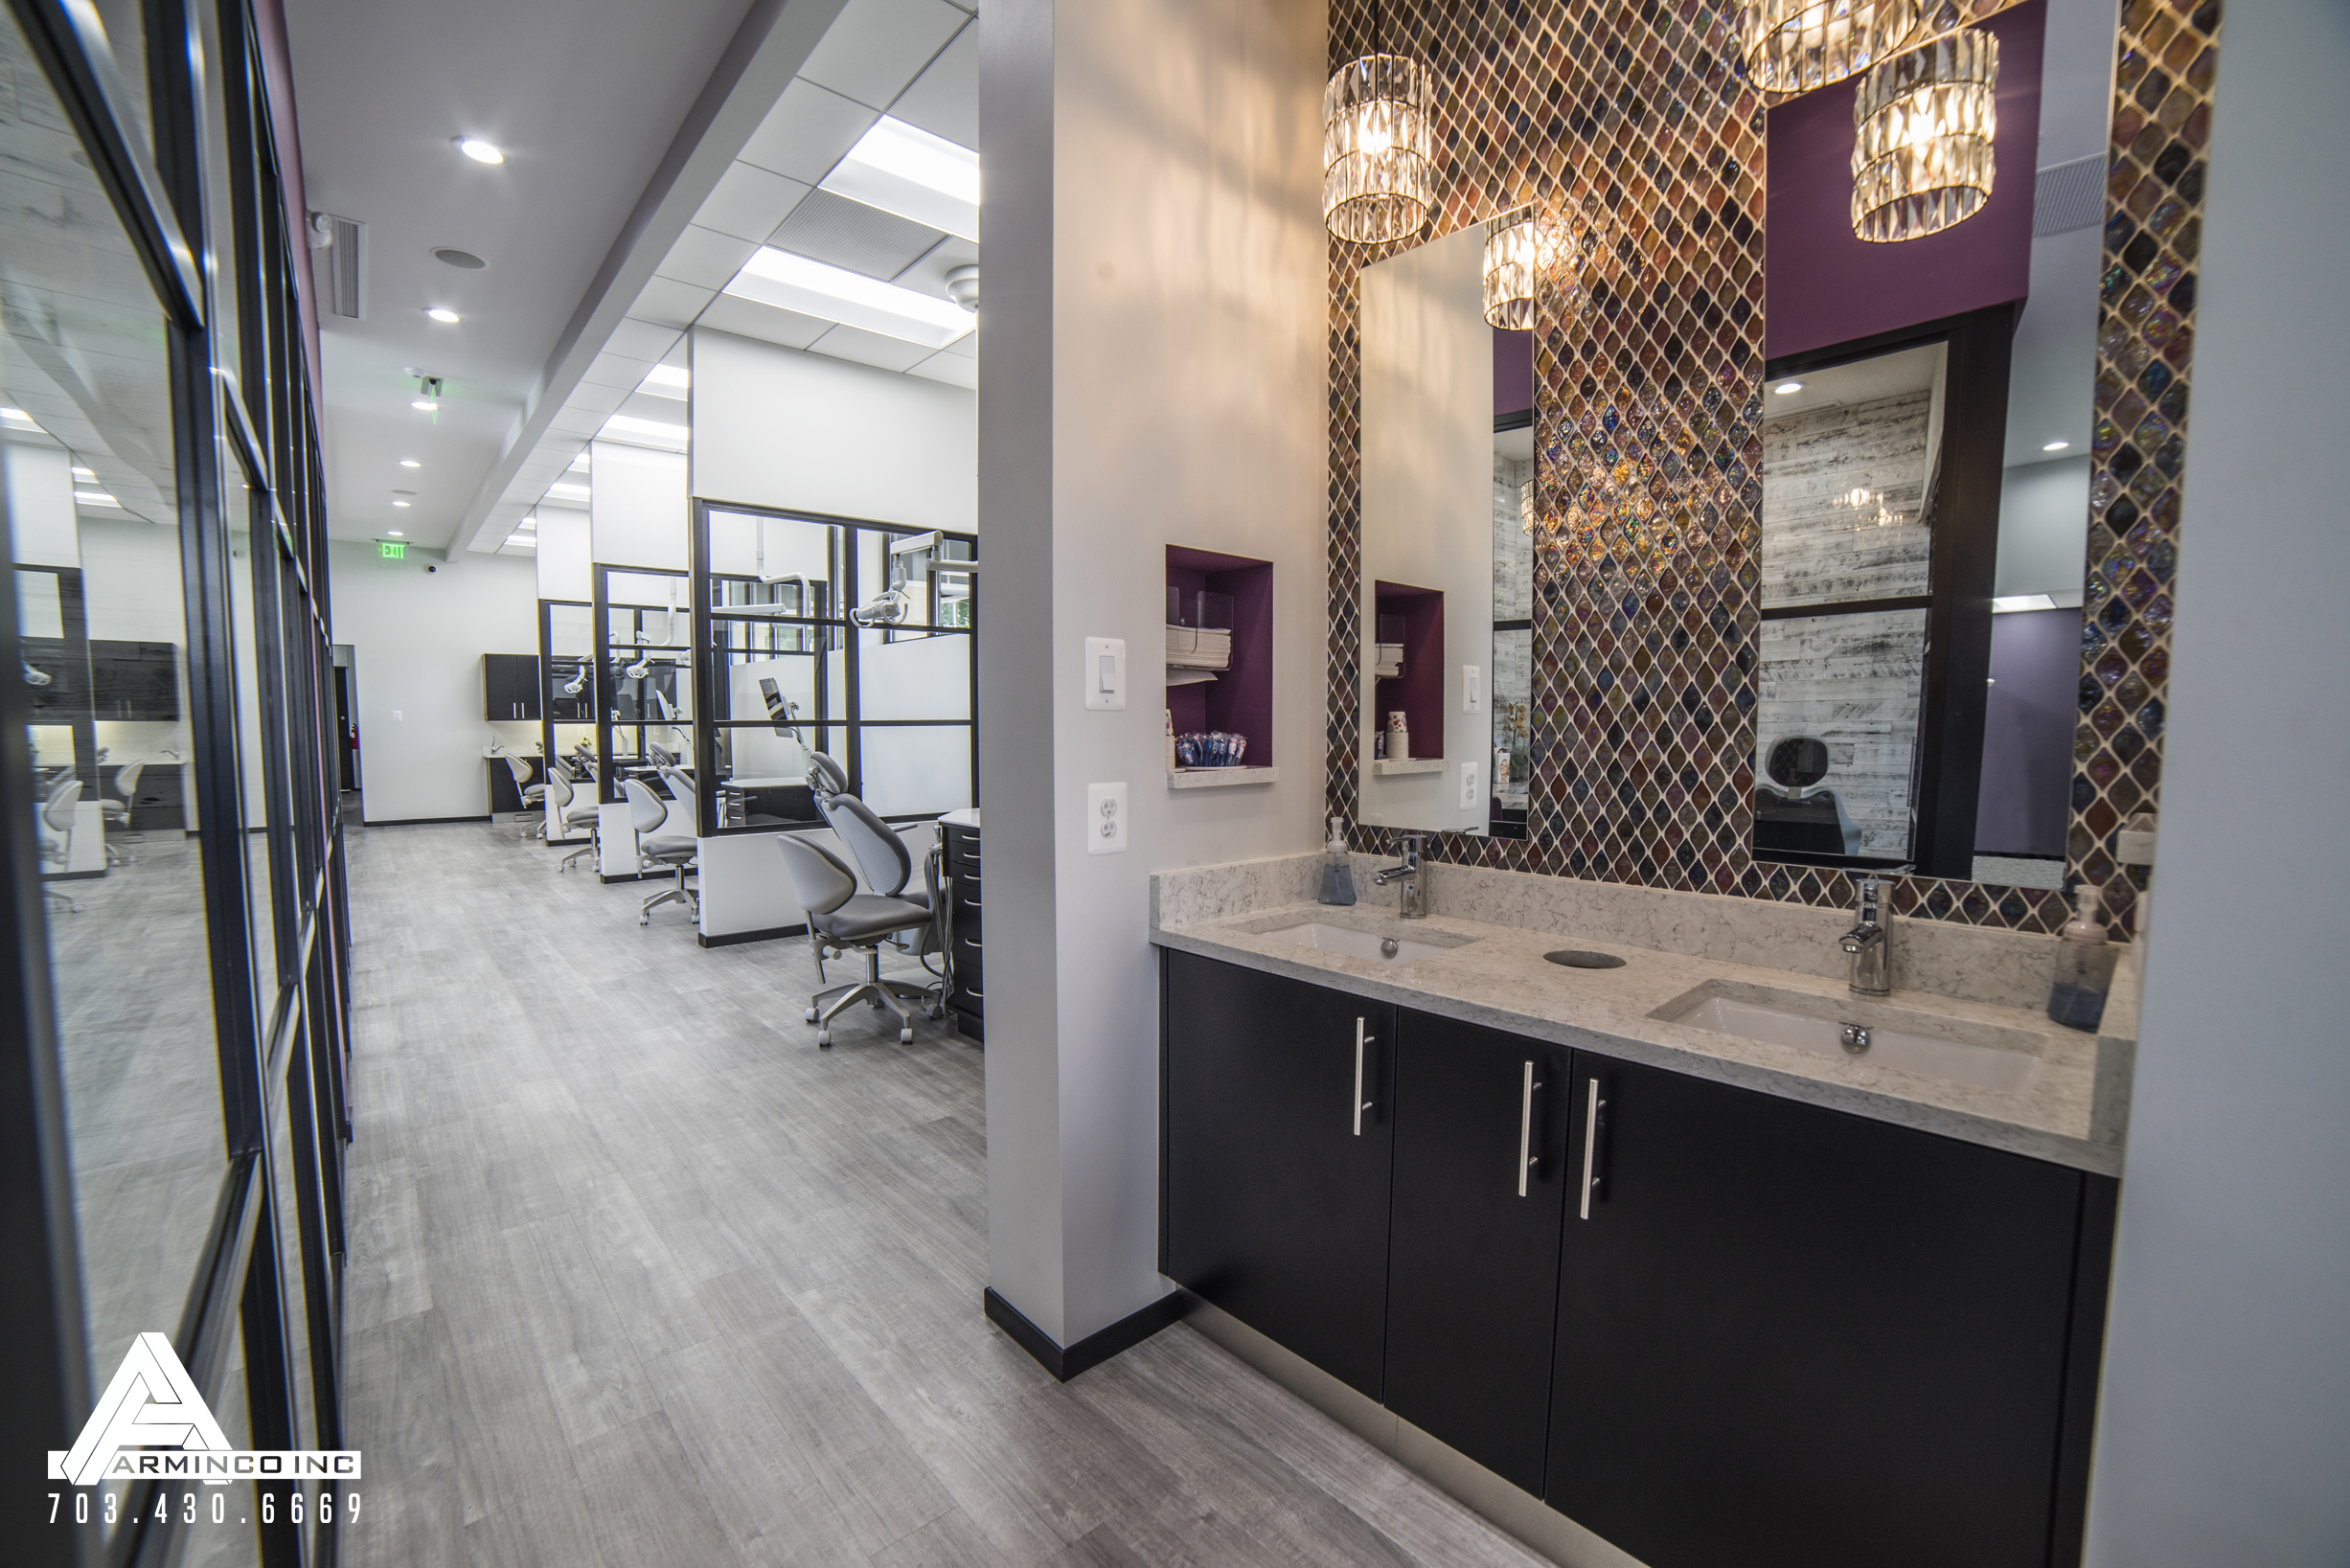 Dental Office Design by Arminco Inc. Orthodontic office